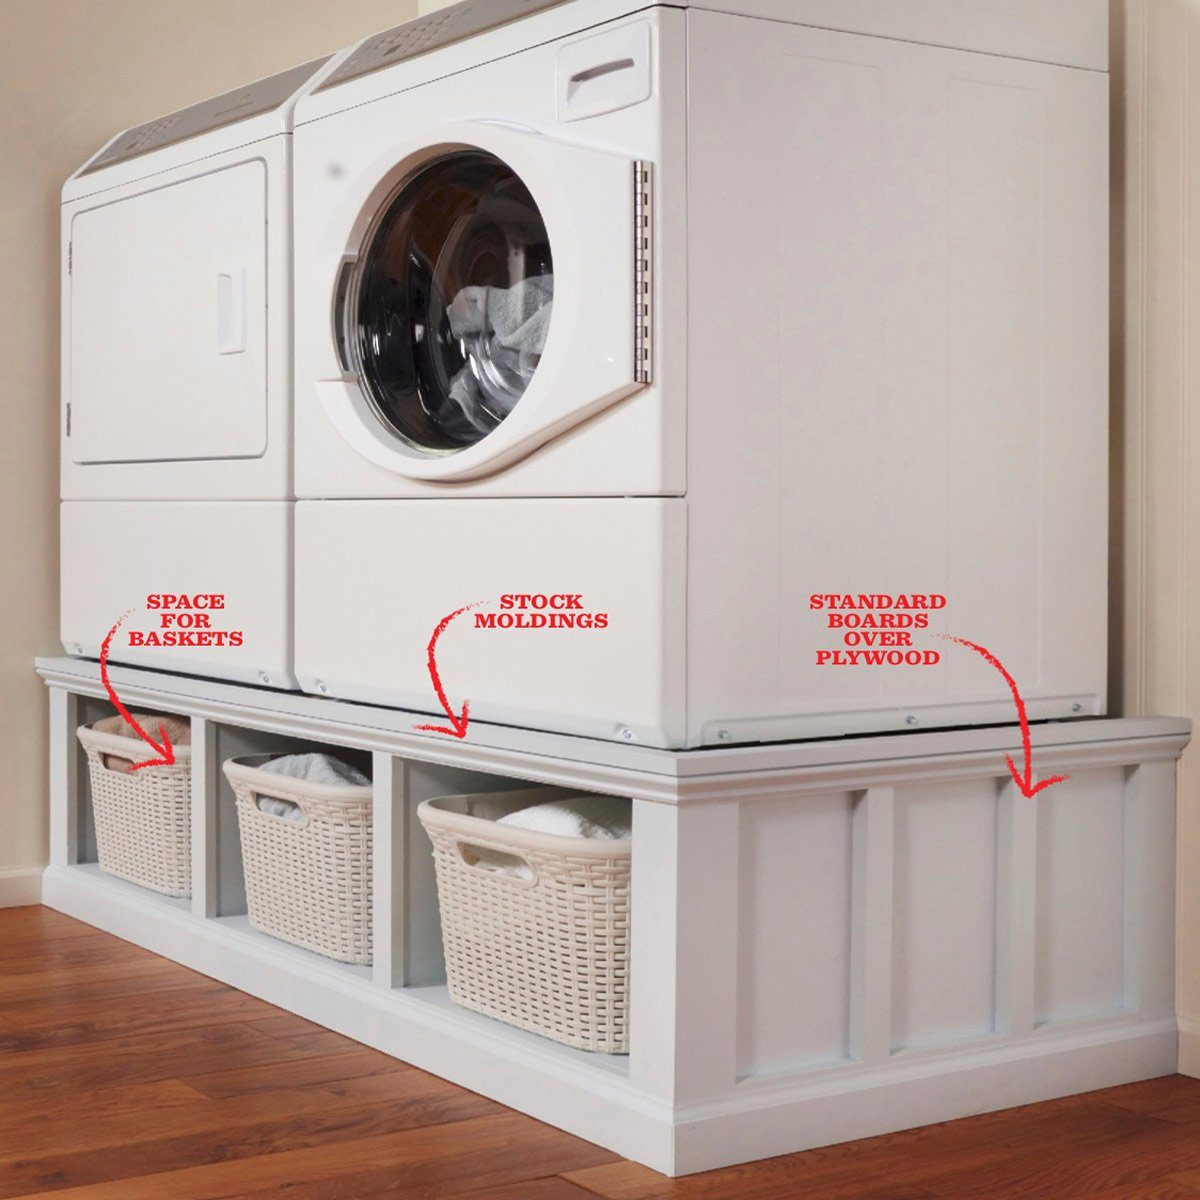 Laundry Room Updates You Can DIY